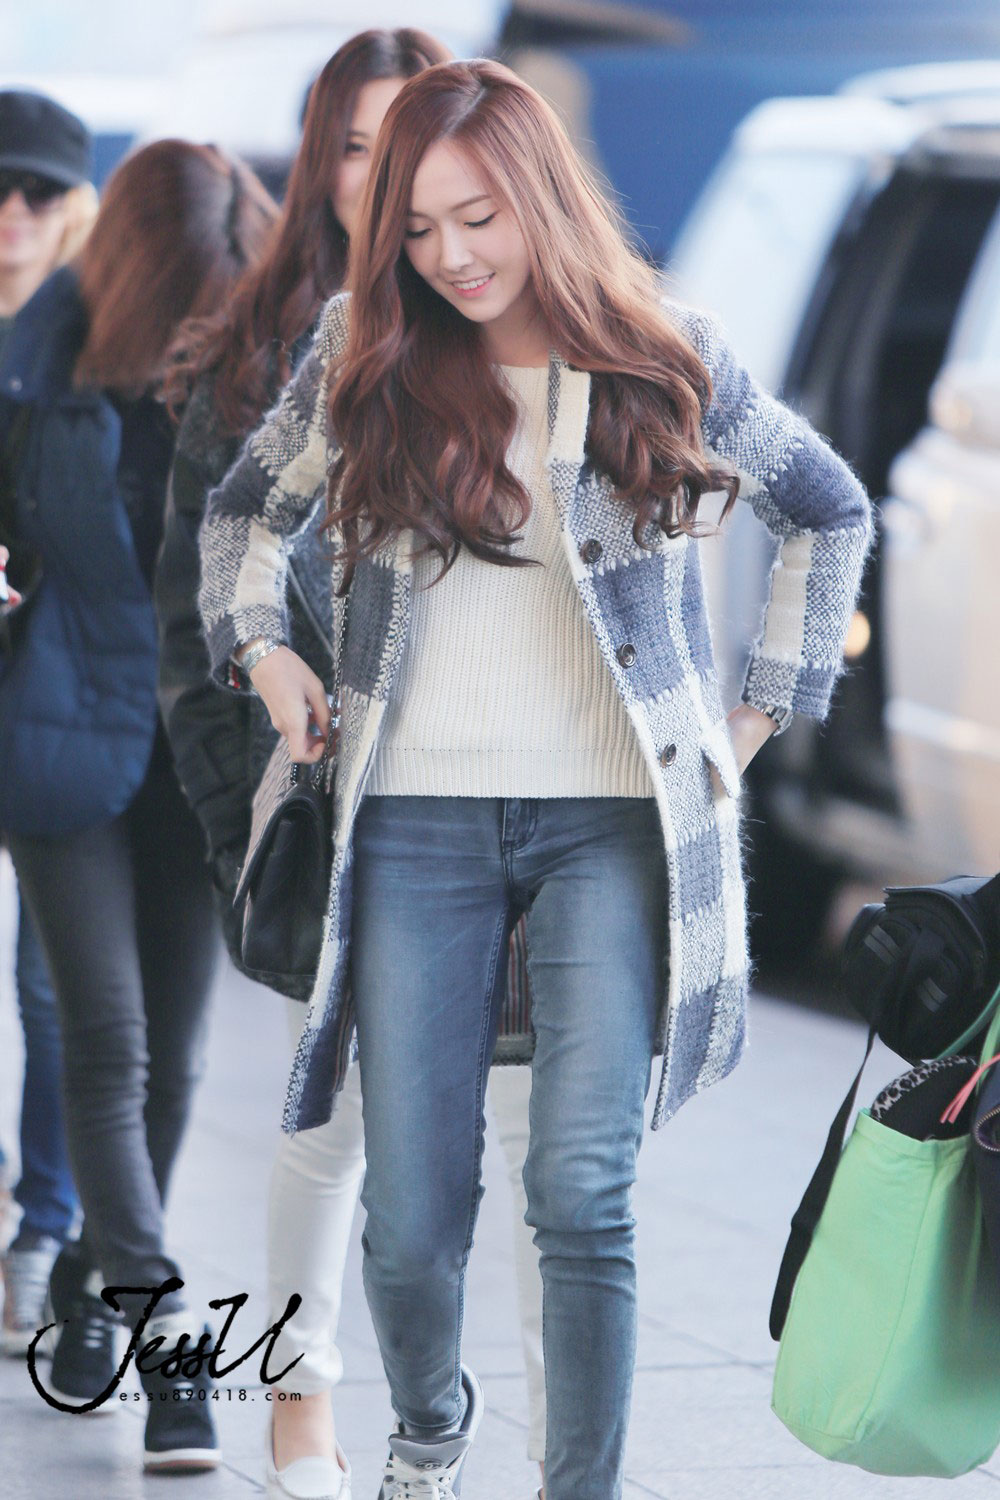 Jessica Snsd Images Jessica 39 S Airport Fashion Hd Wallpaper